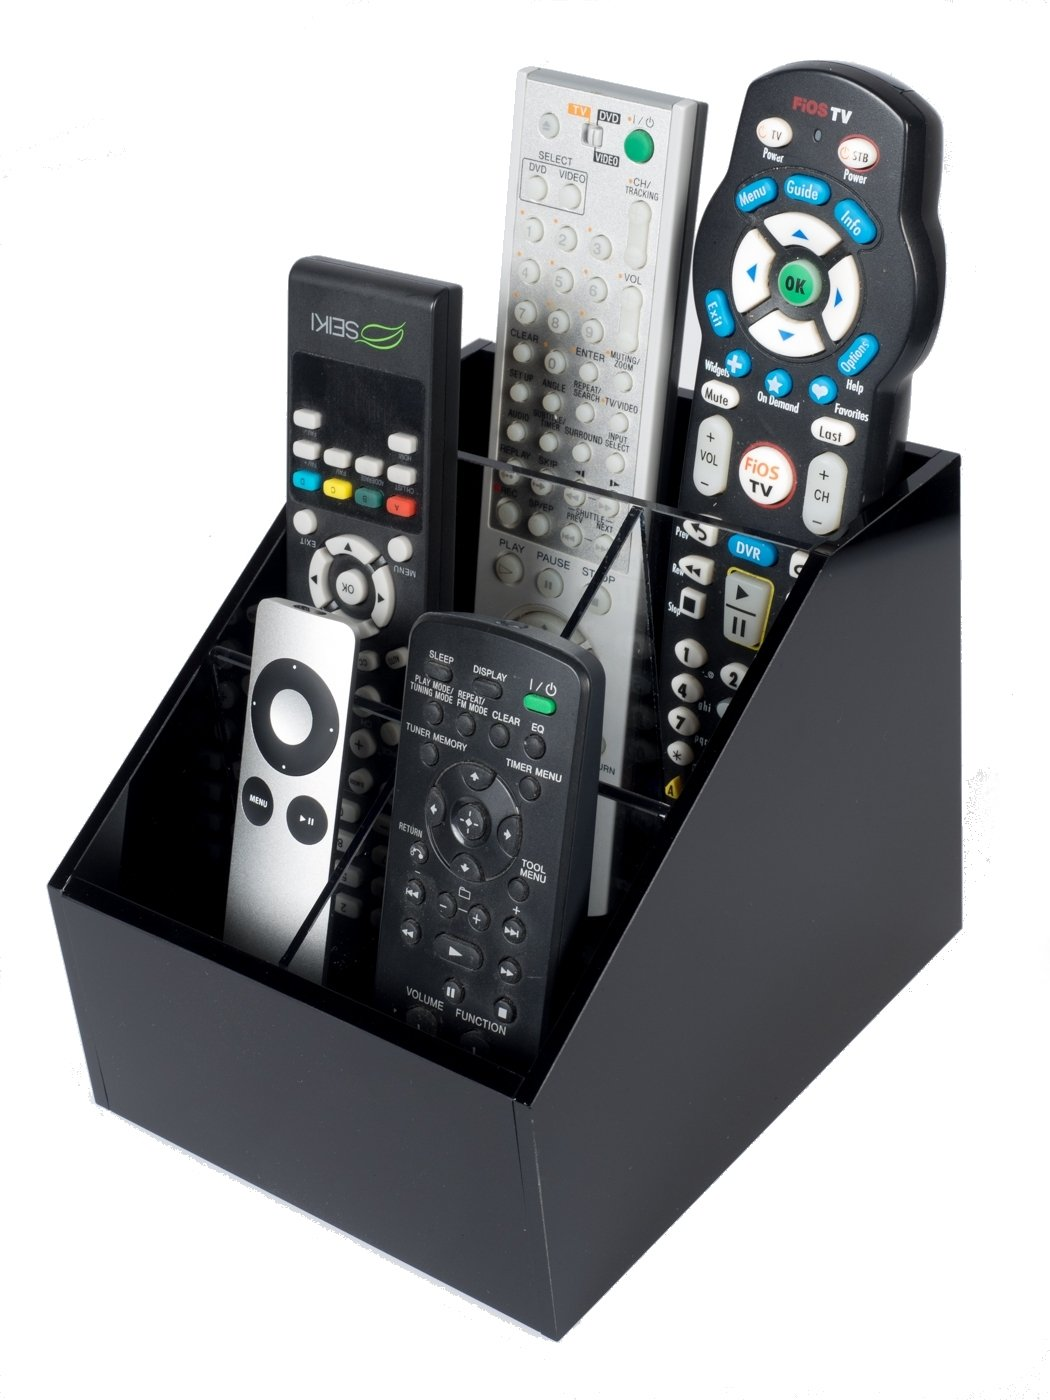 Remote Control Holder For Coffee Table Amazoncom Customized Acrylic Tv Remote Control Holder Organizer